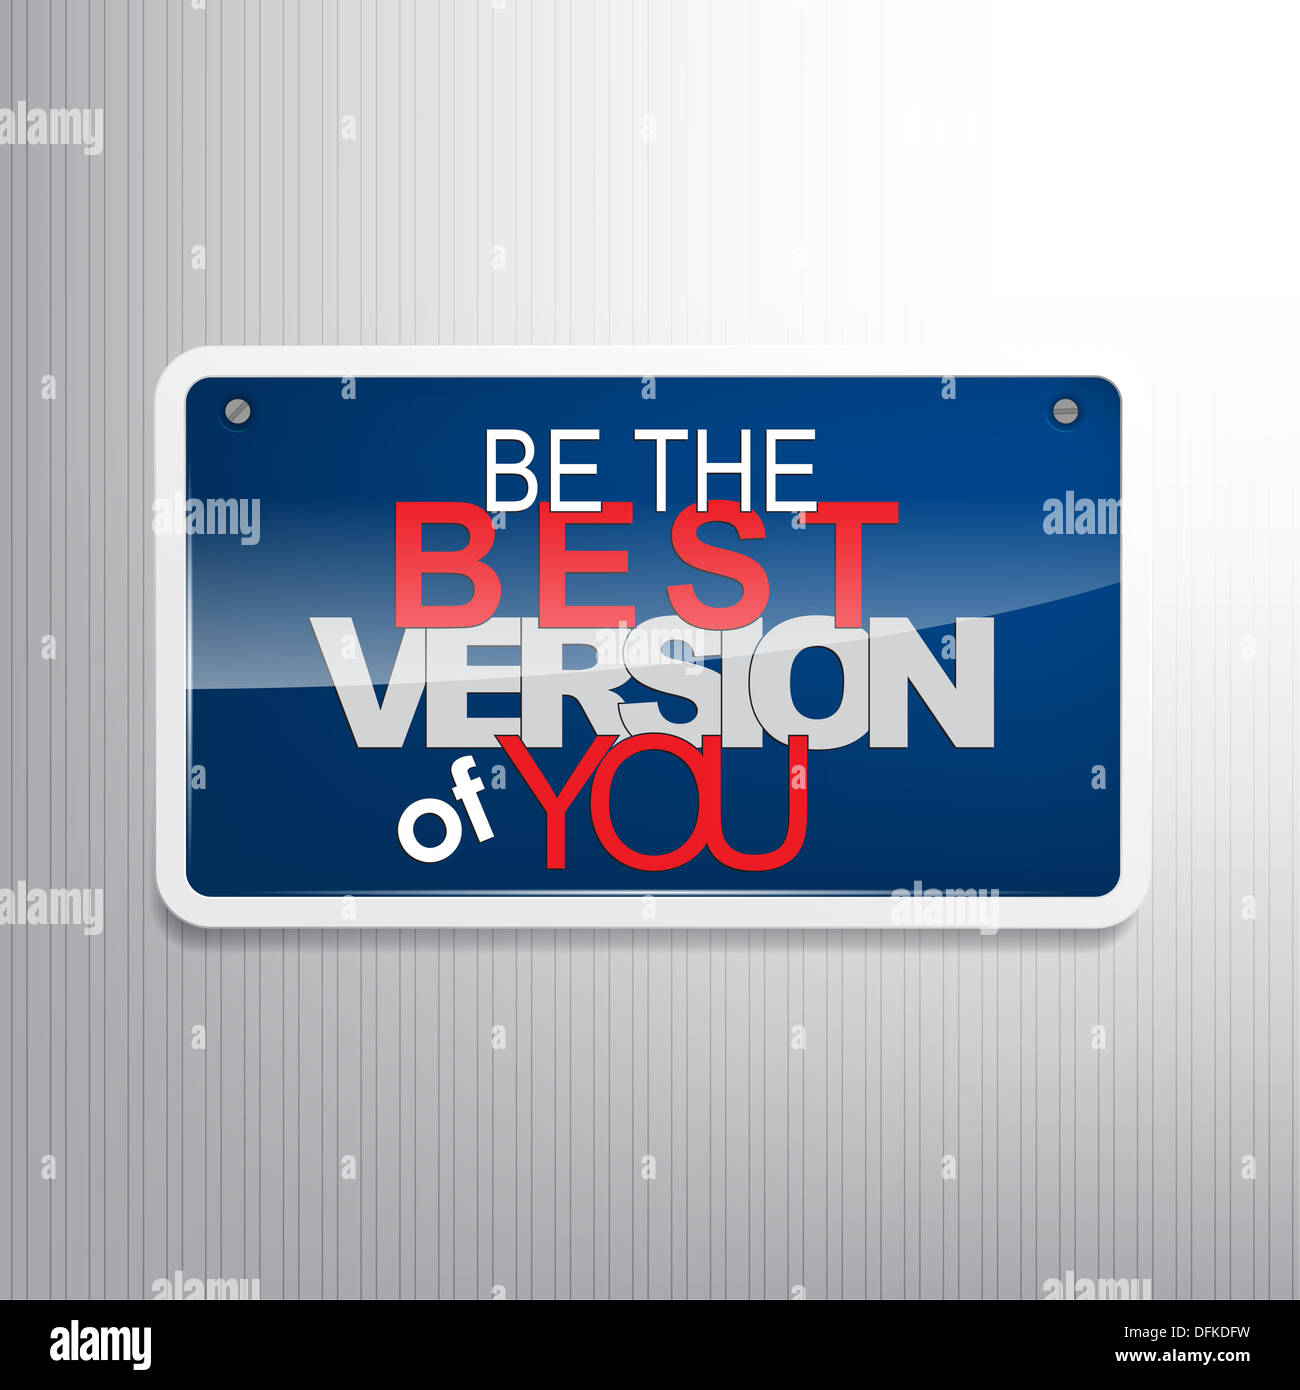 Be the best version of you. Motivational sign. - Stock Image